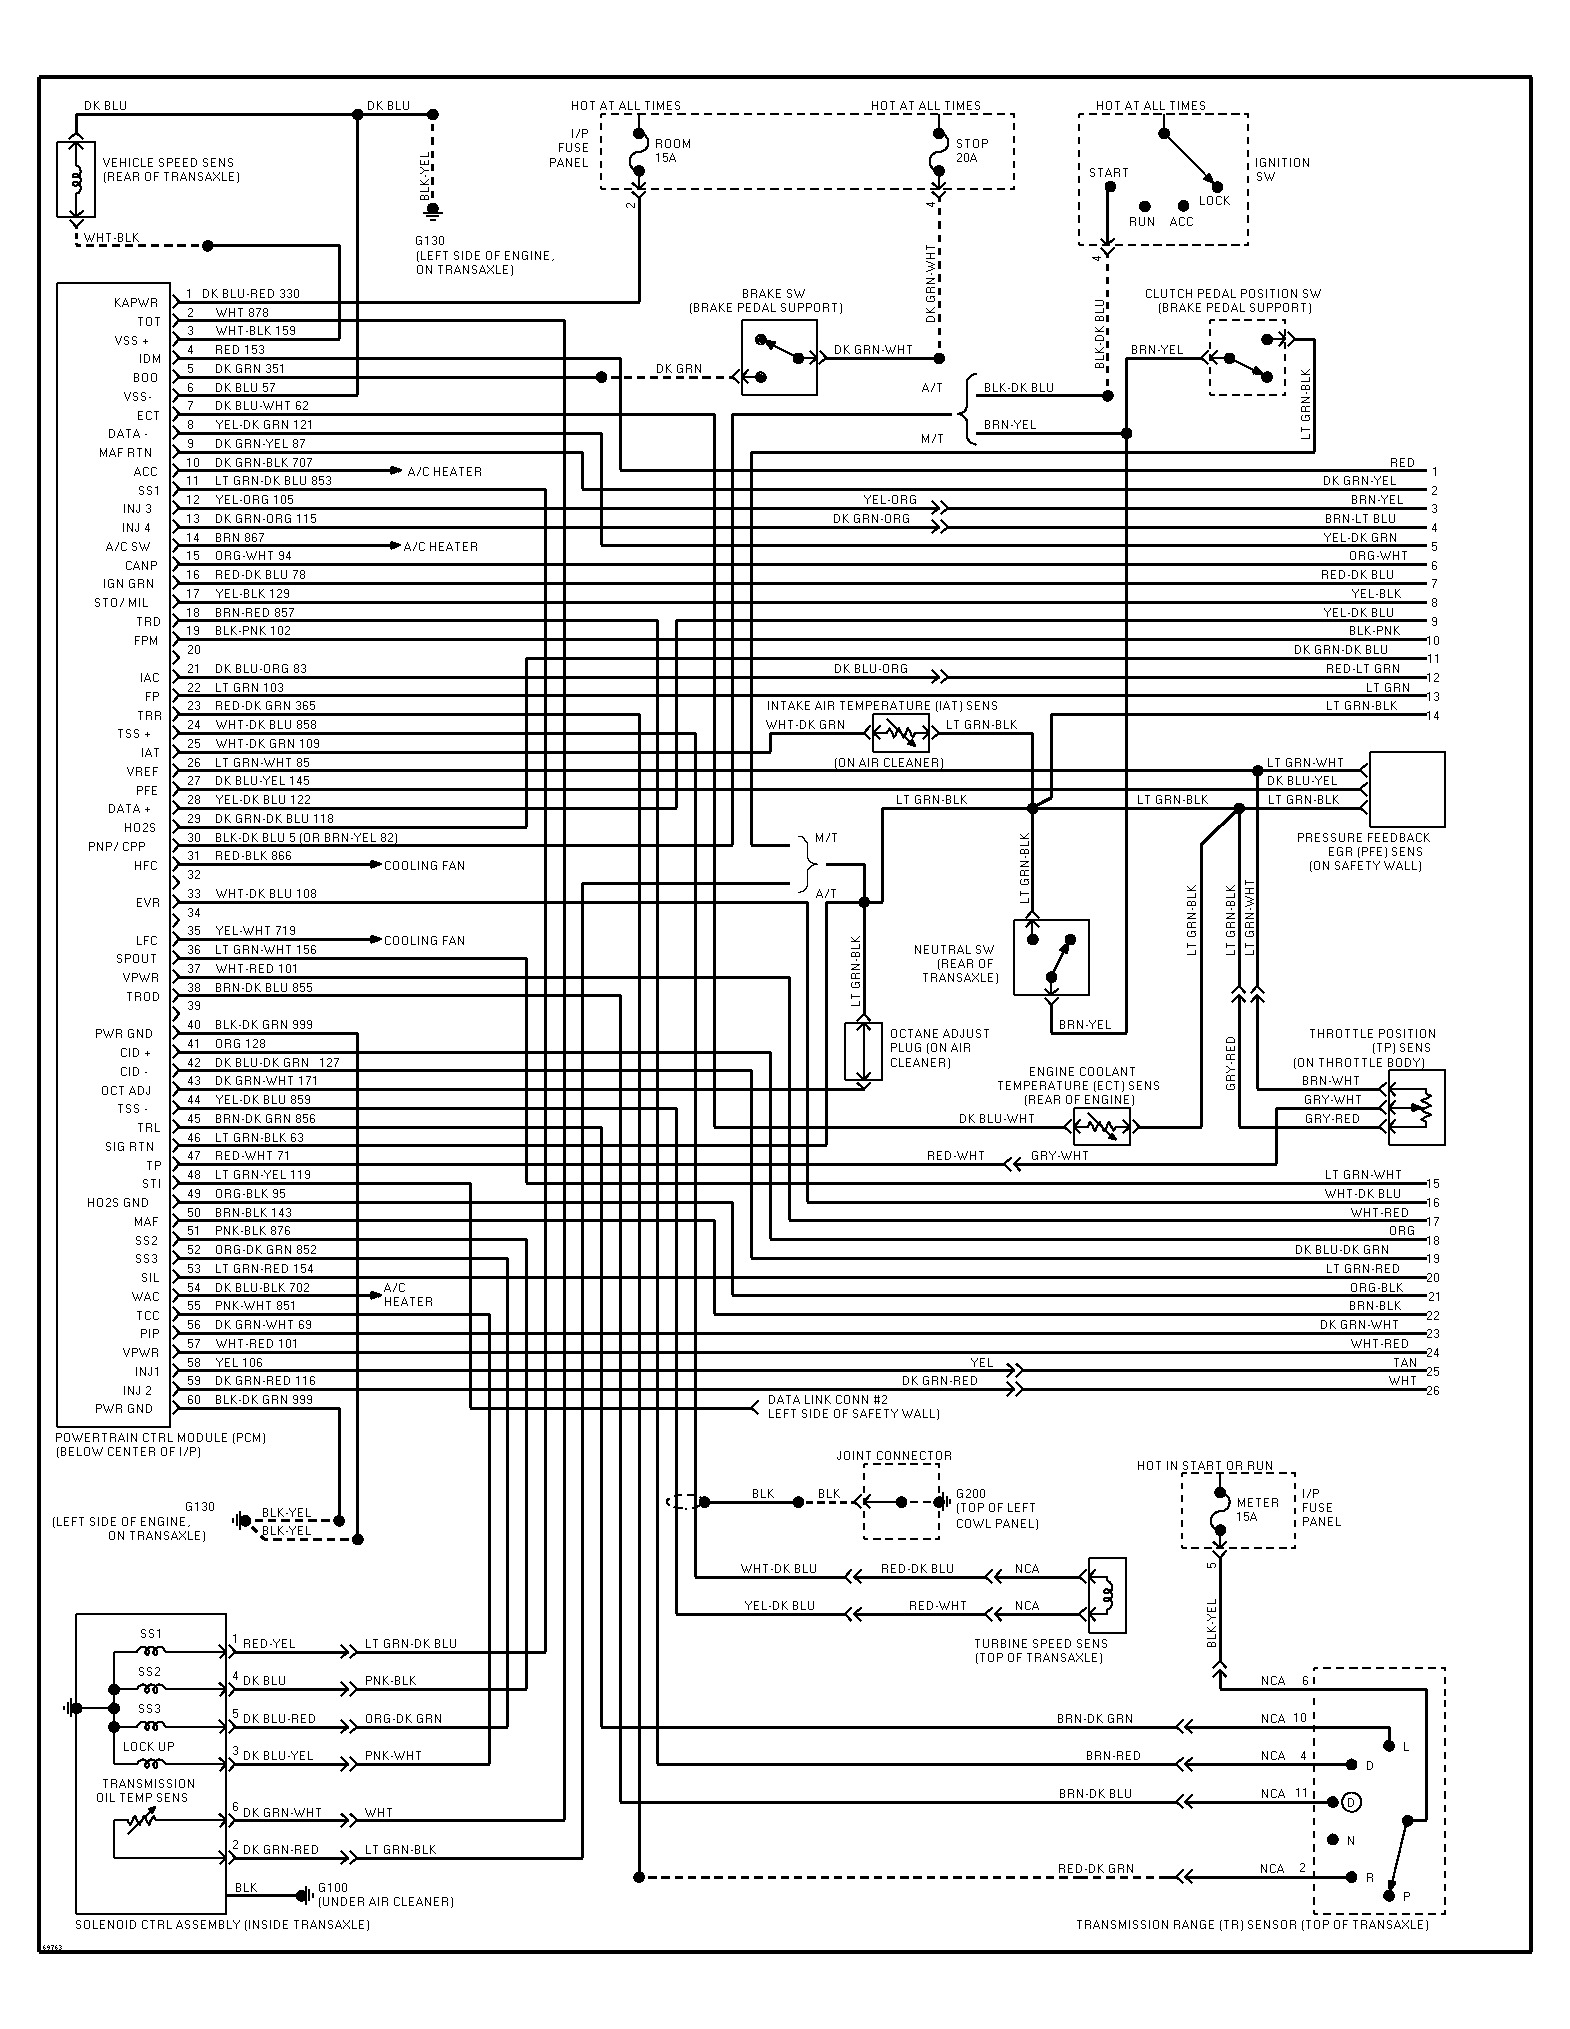 original 1995 ford escort wiring diagram i need to find a color coded ford escort wiring diagram at gsmportal.co